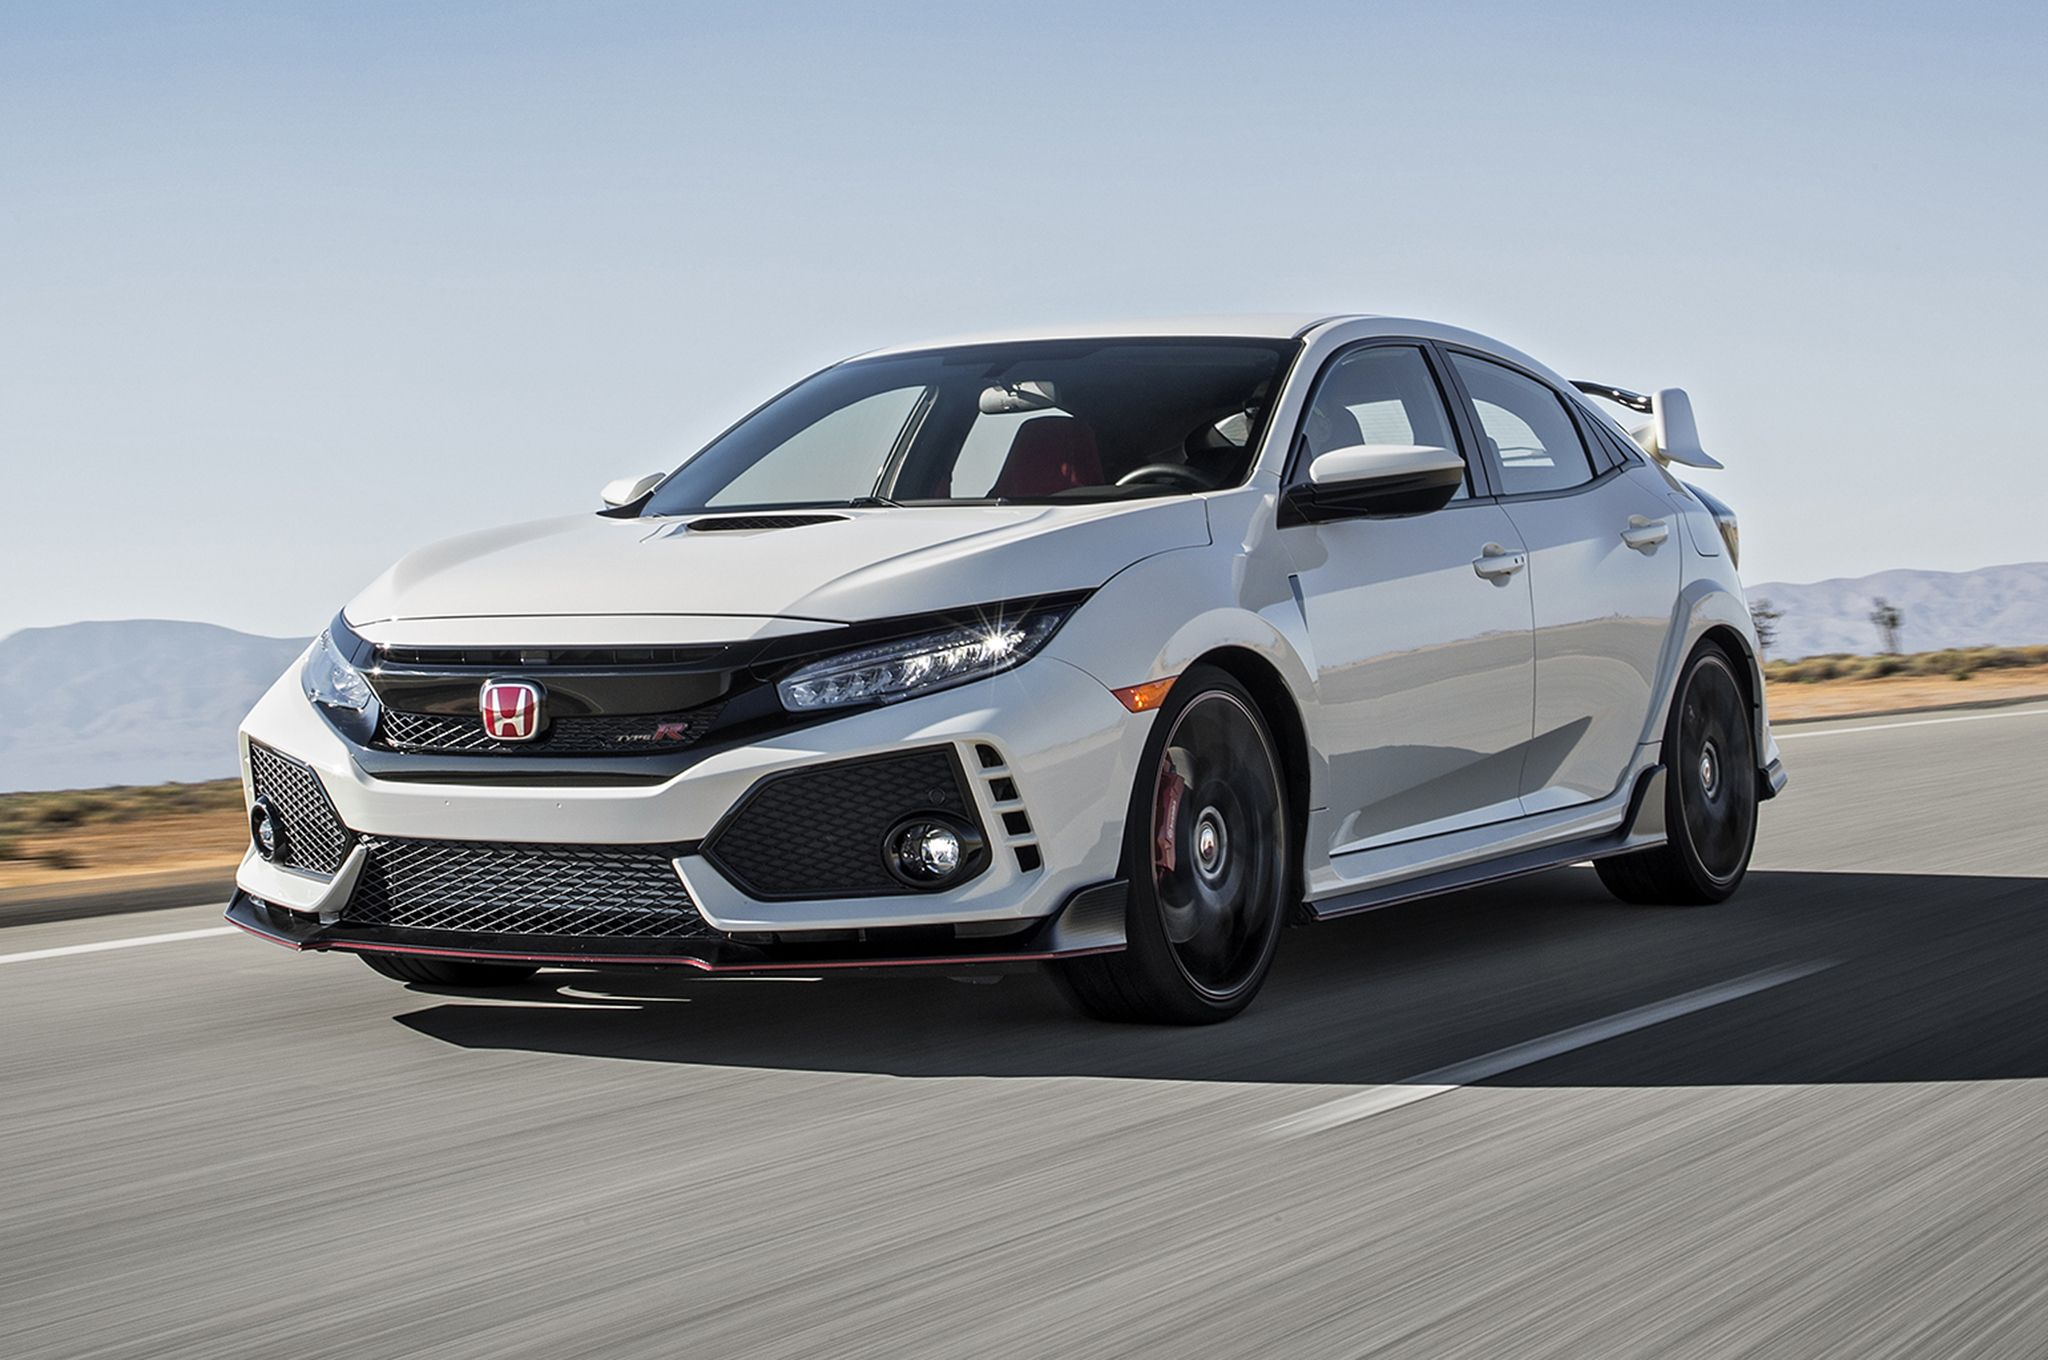 2017 Honda Civic Type R First Test Review: Worlds Greatest Hot ...